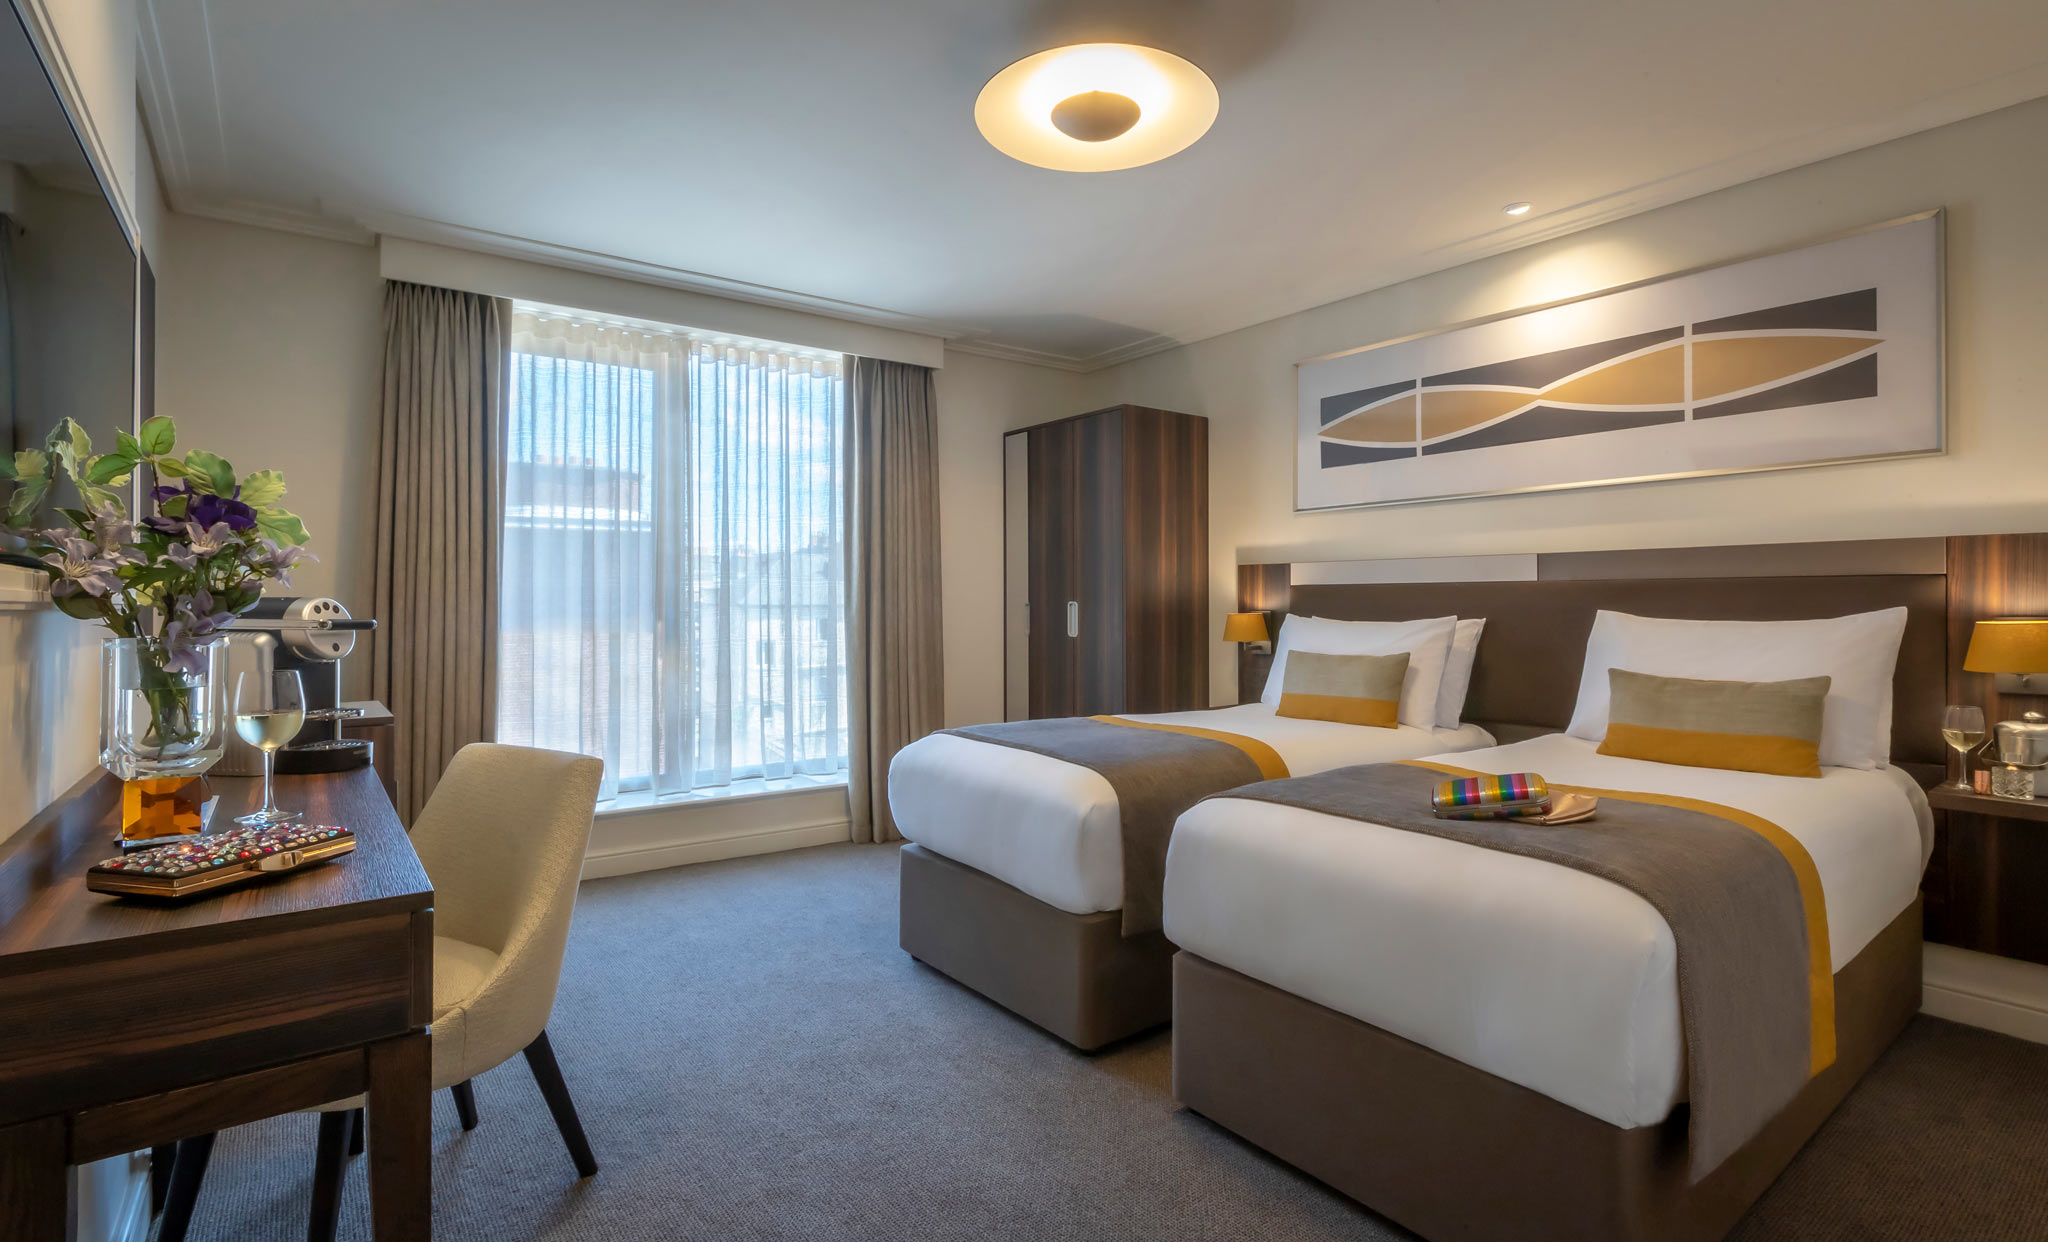 Hotel-7-Dublin-family-room-with-2-double-beds